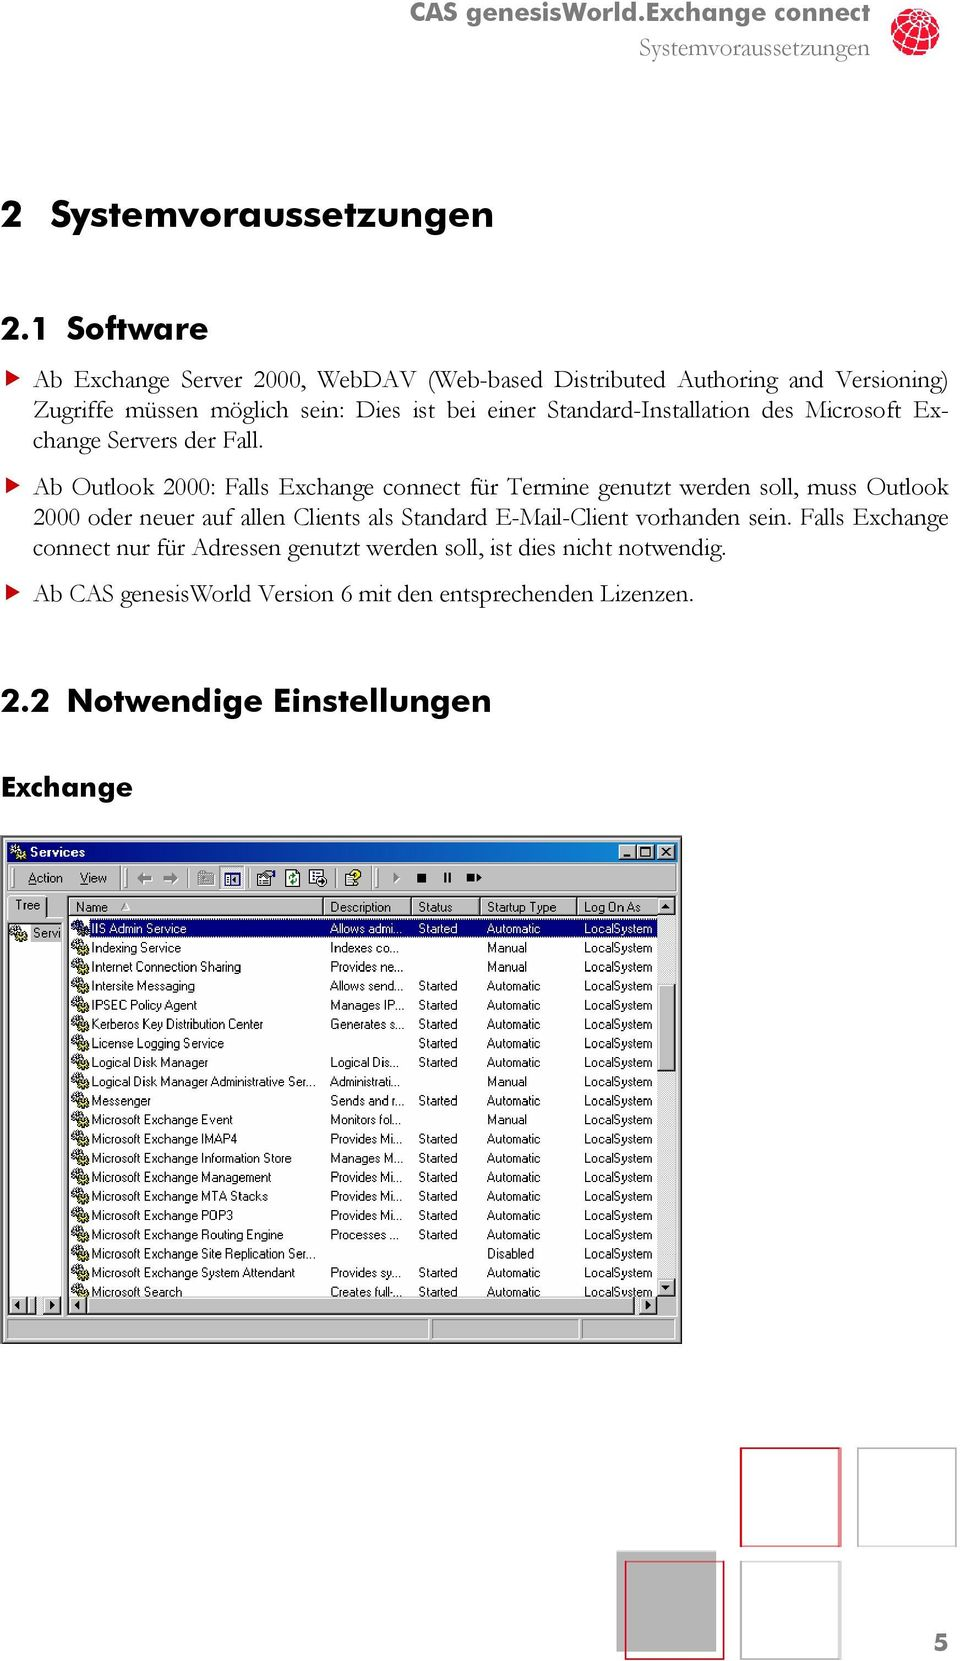 Standard-Installation des Microsoft Exchange Servers der Fall.